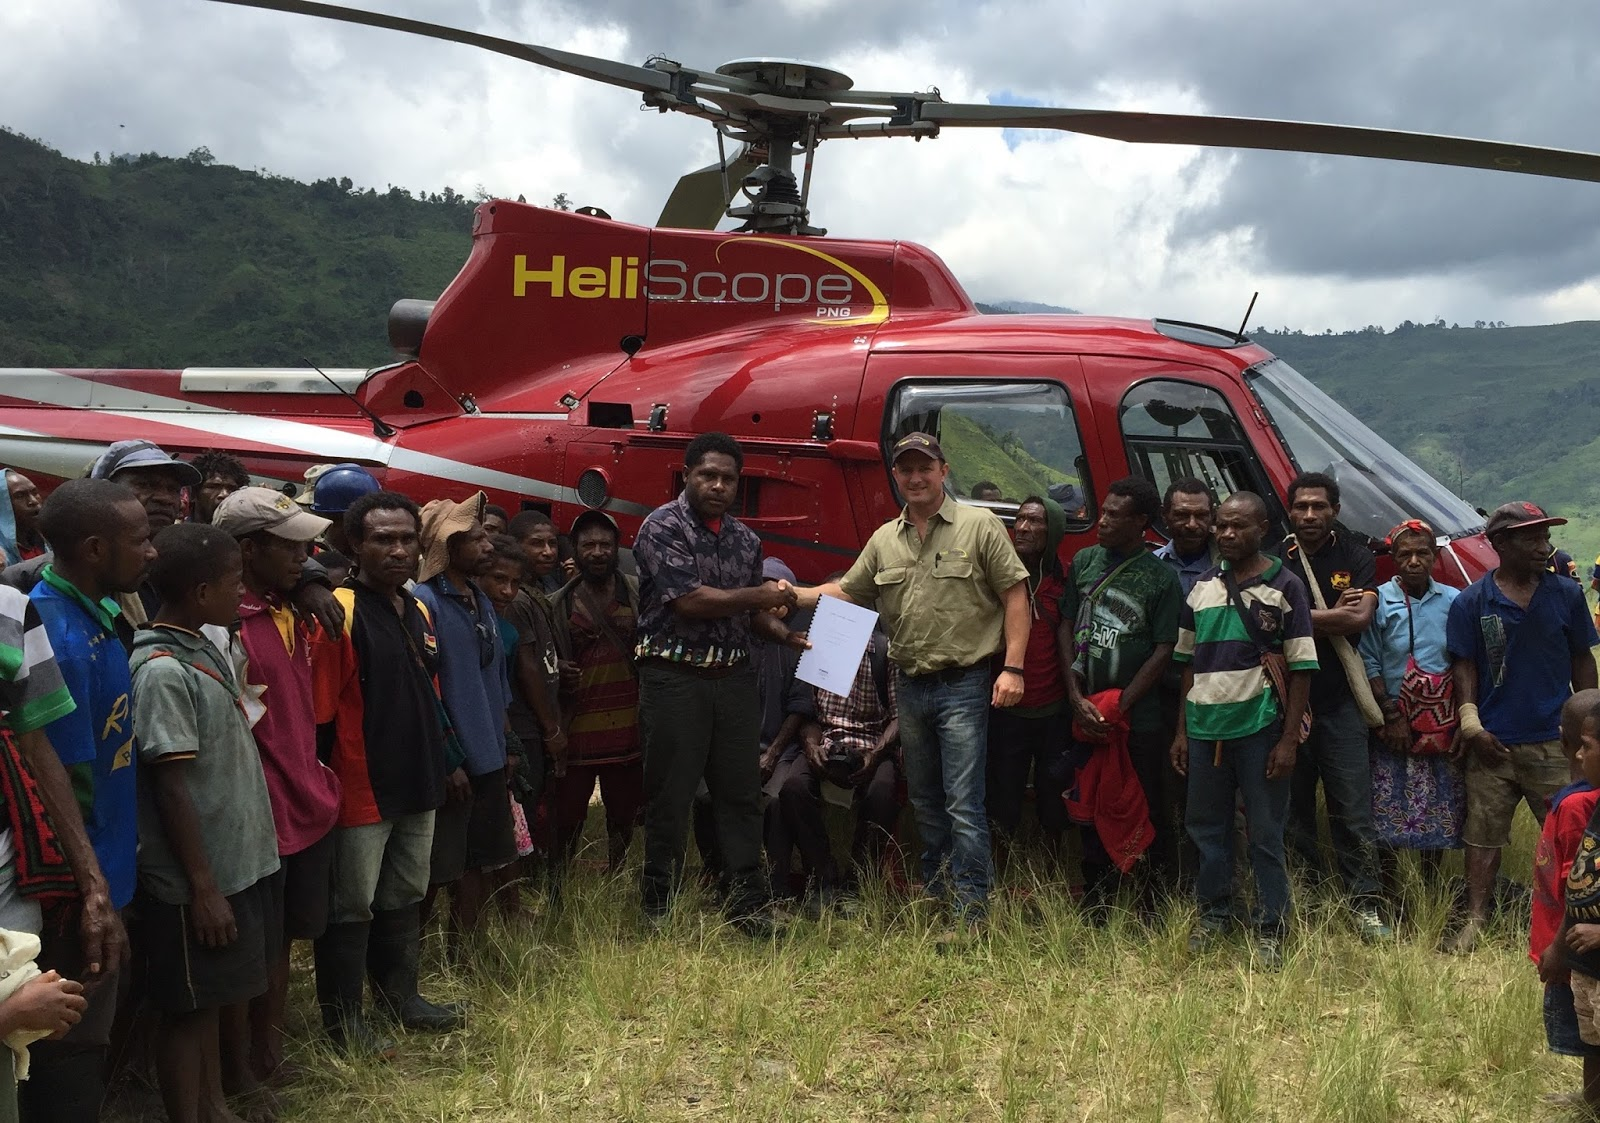 Helicopter Company partners with Yulai Landowners to provide.